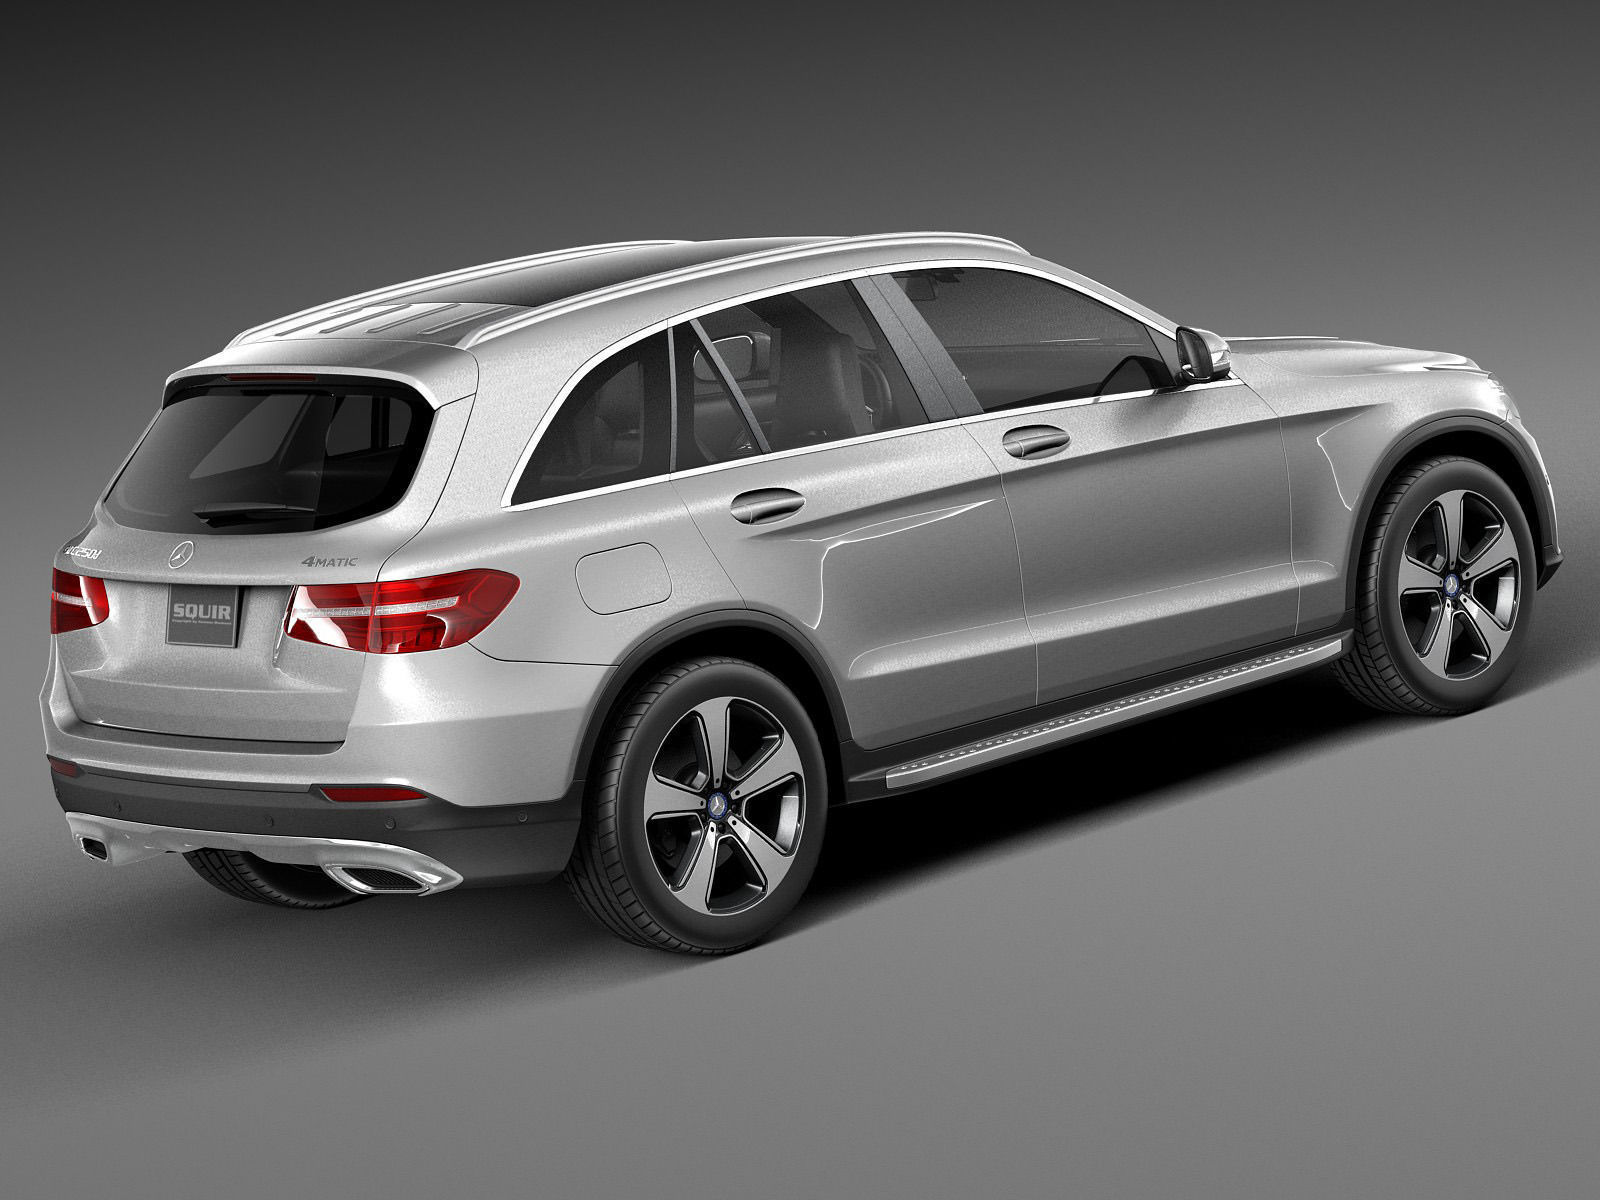 Mercedes benz glc 2016 3d model max obj 3ds fbx c4d lwo lw for Mercedes benz suv models